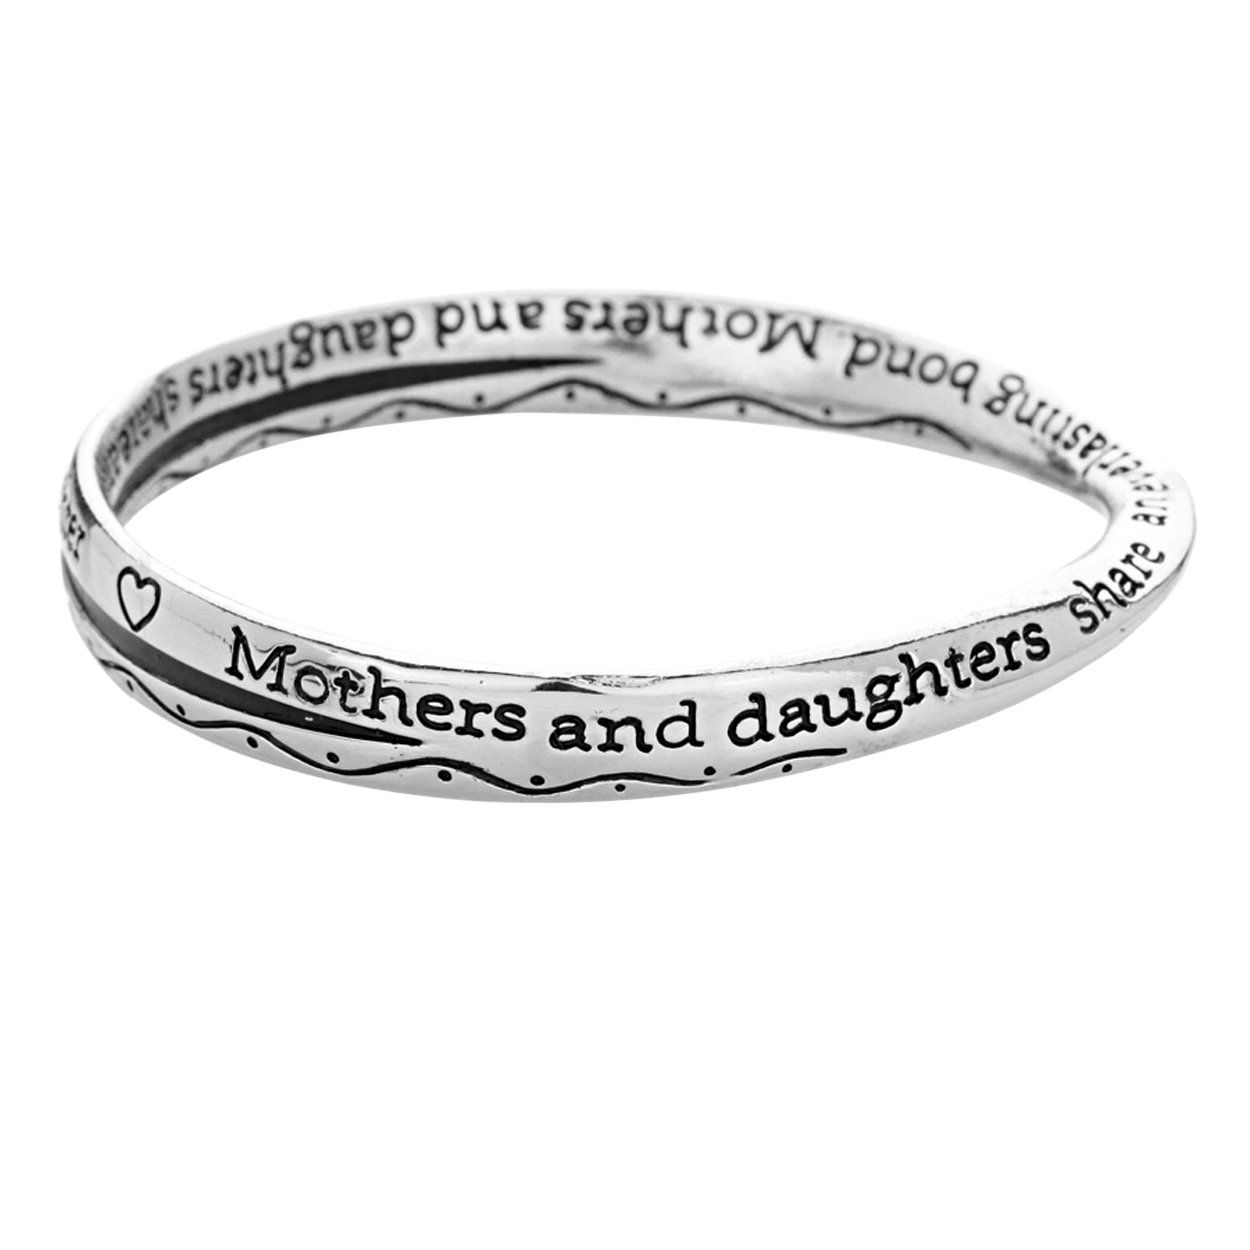 buy in love best customised at inscribed india bracelet price online couple